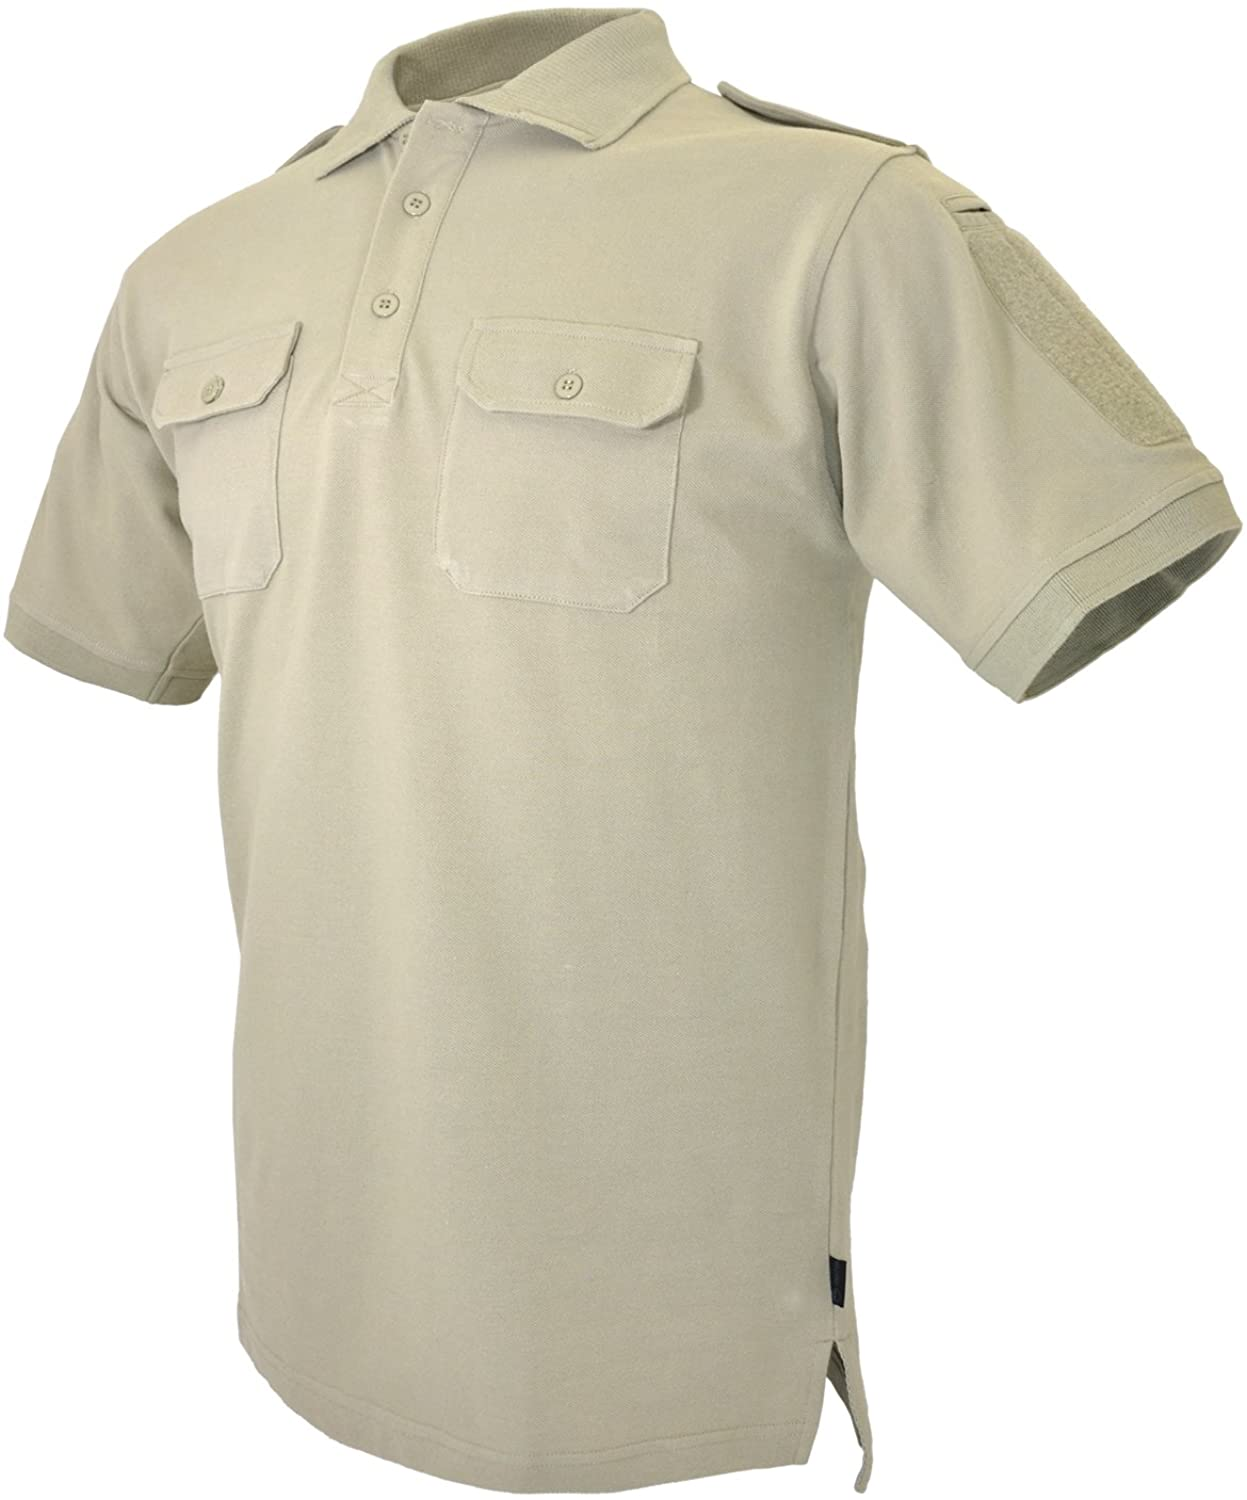 HAZARD 4 Leo Battle Polo(TM) Tactical Arm-Patch Areas/Chest Pockets Cotton Shirt by (R)